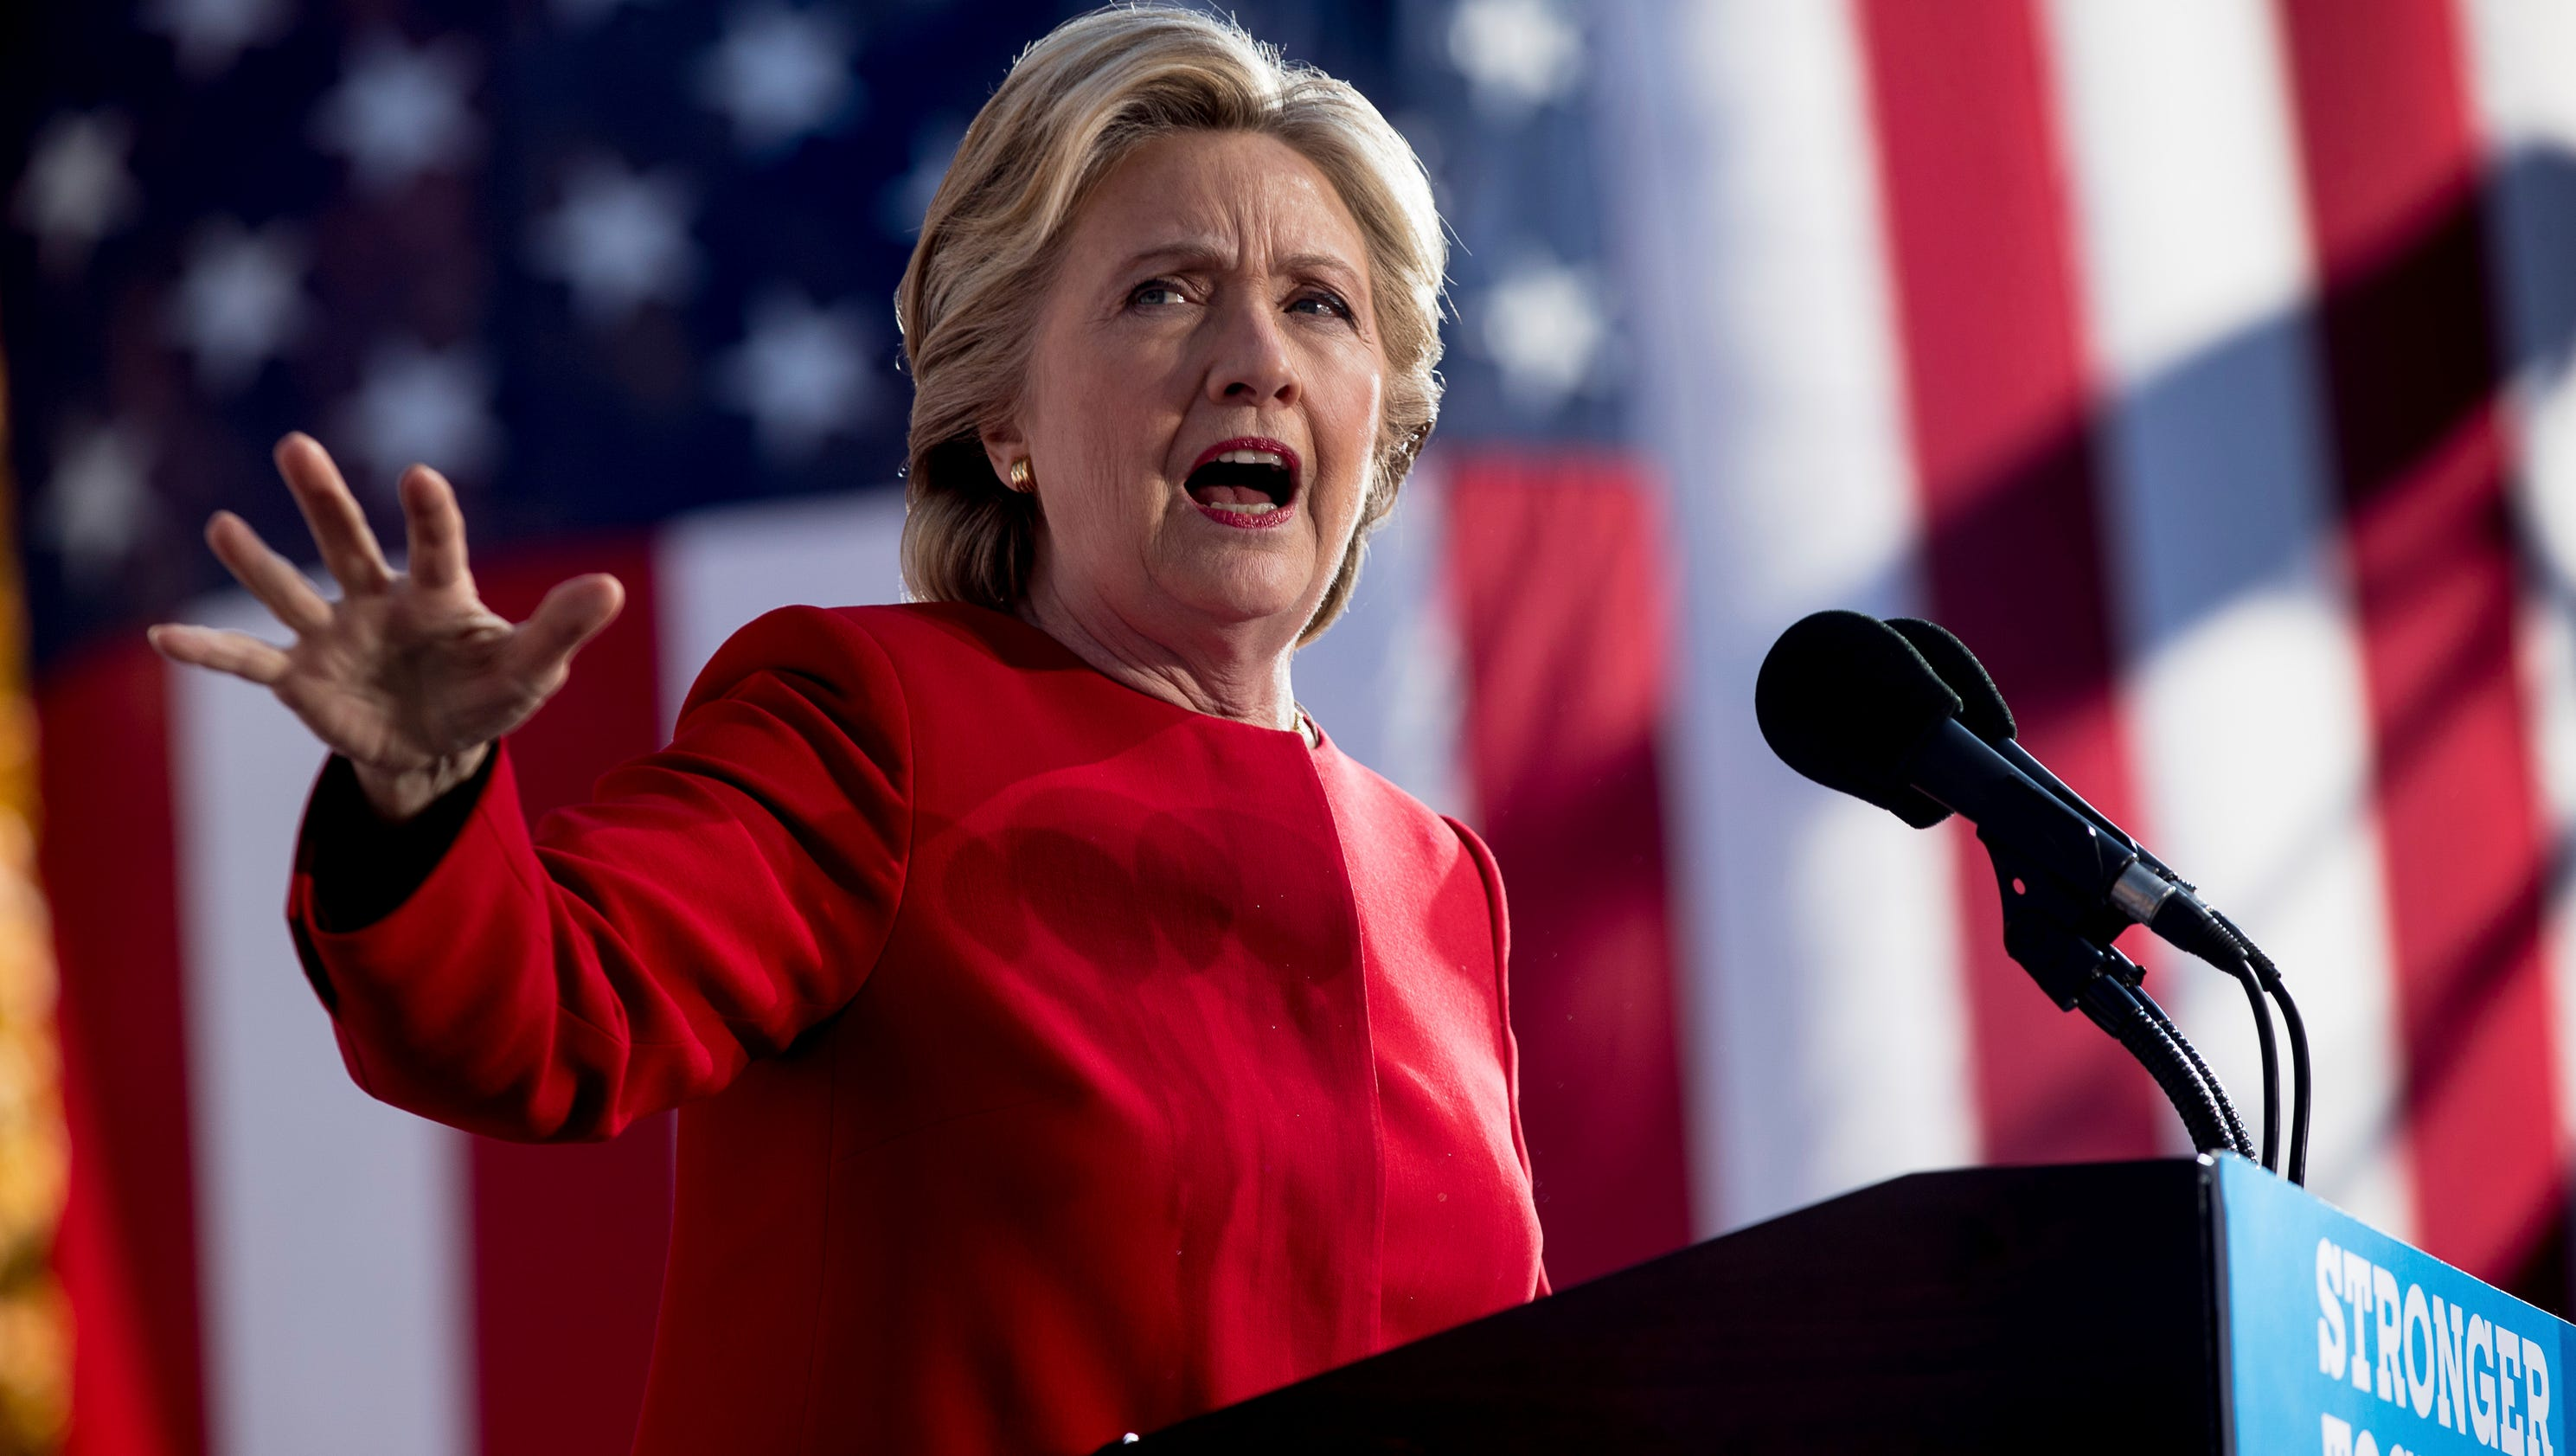 Watch Hillary Clinton Delivers Concession Speech